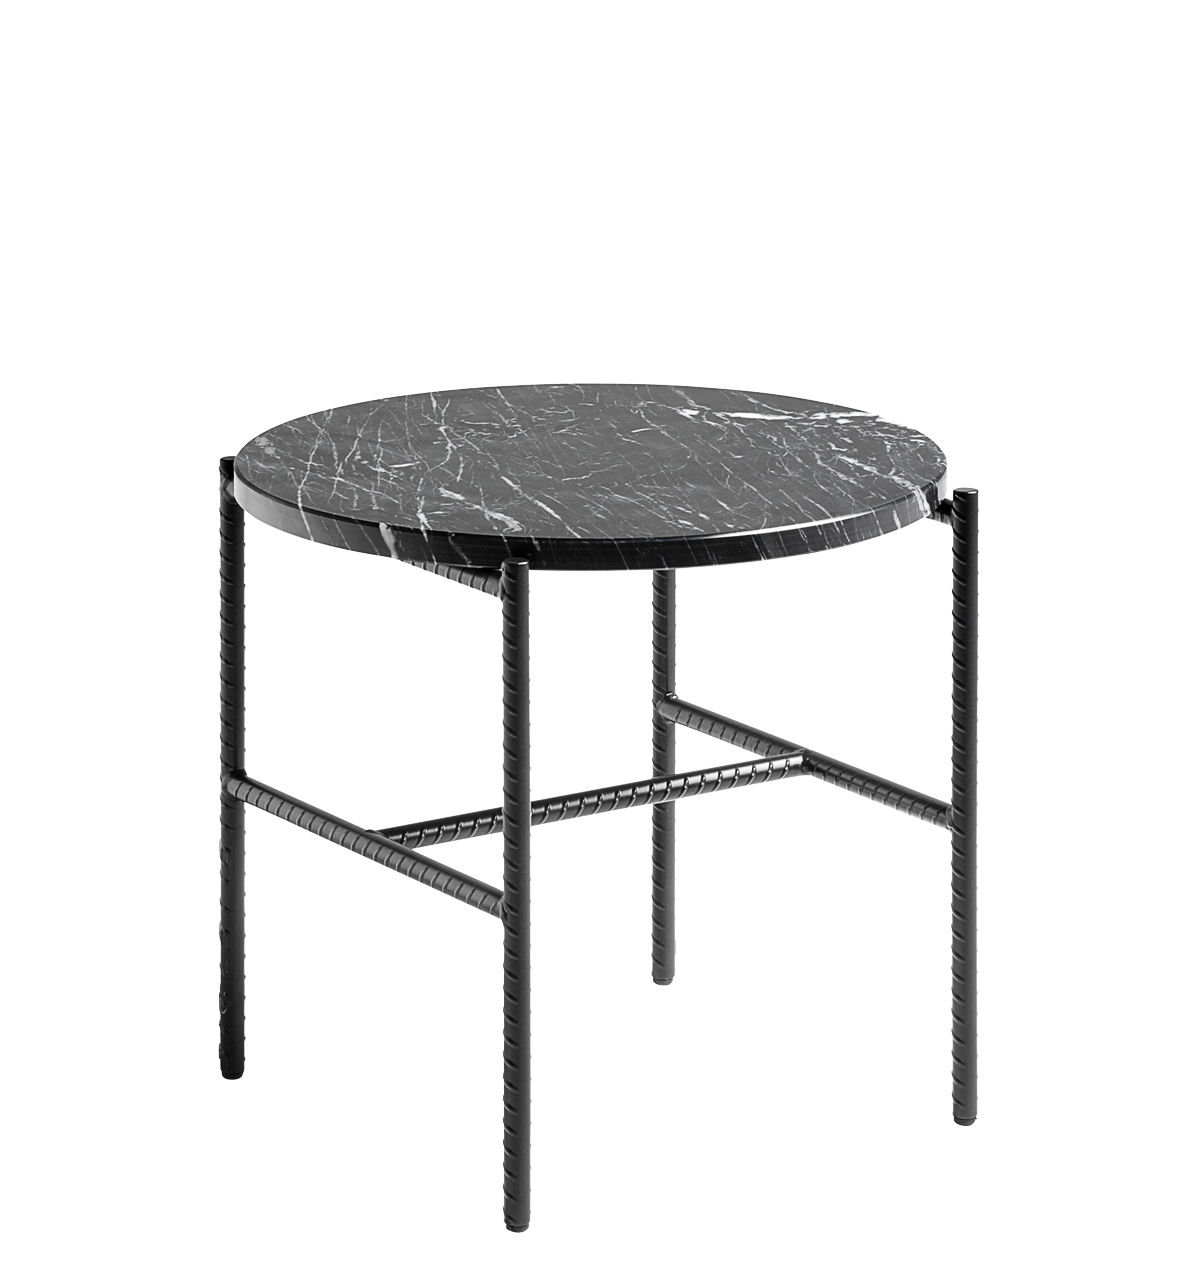 Furniture - Coffee Tables - Rebar Coffee table - / Marbre - Ø 45 by Hay - Noir / Plateau marbré - Lacquered steel, Marble